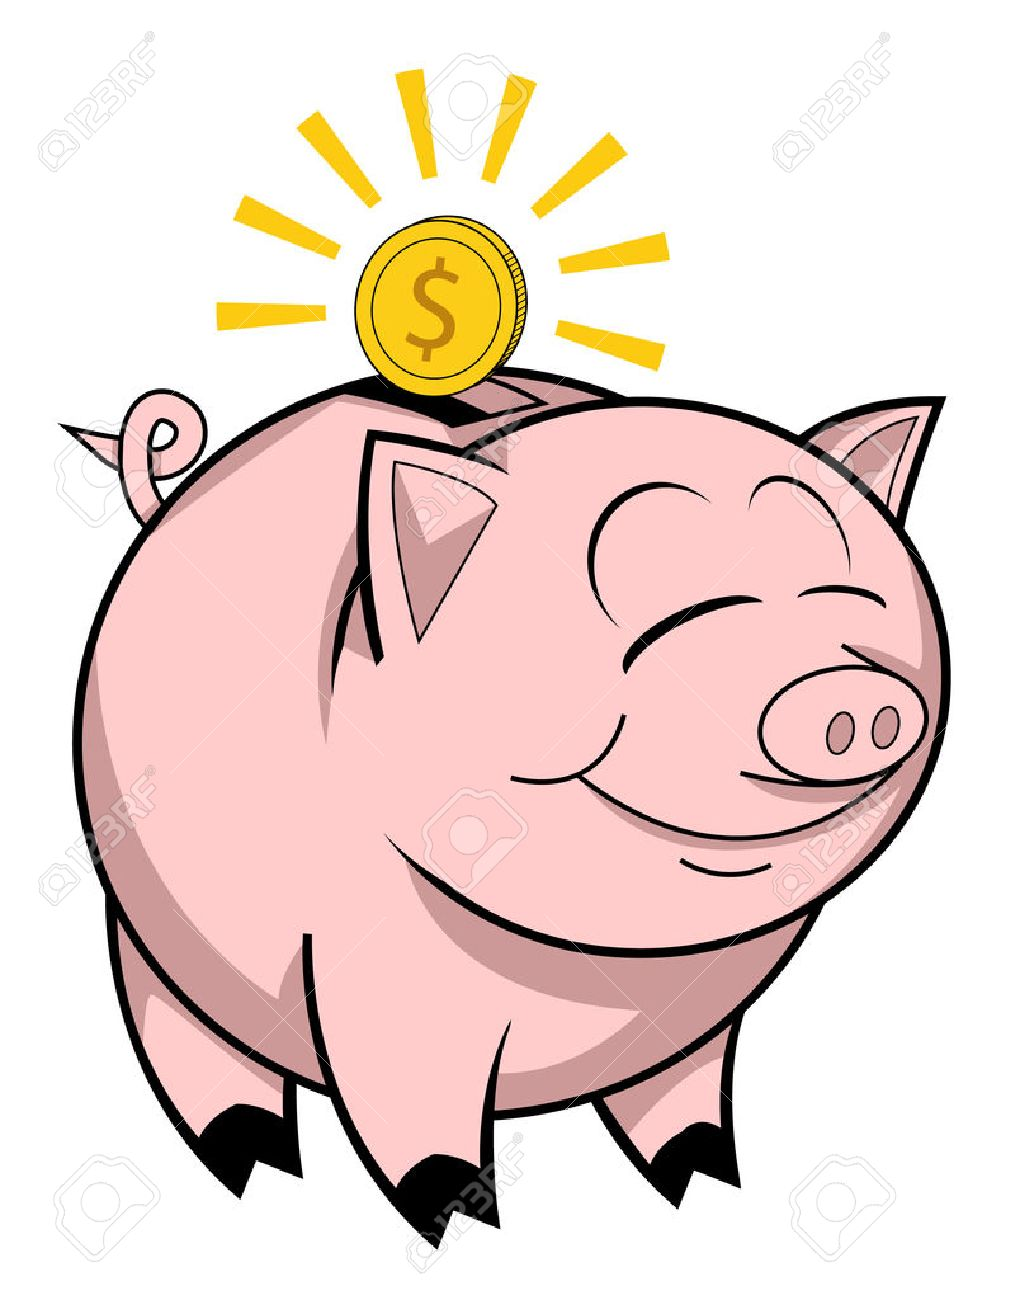 34 411 piggy bank money cliparts stock vector and royalty free